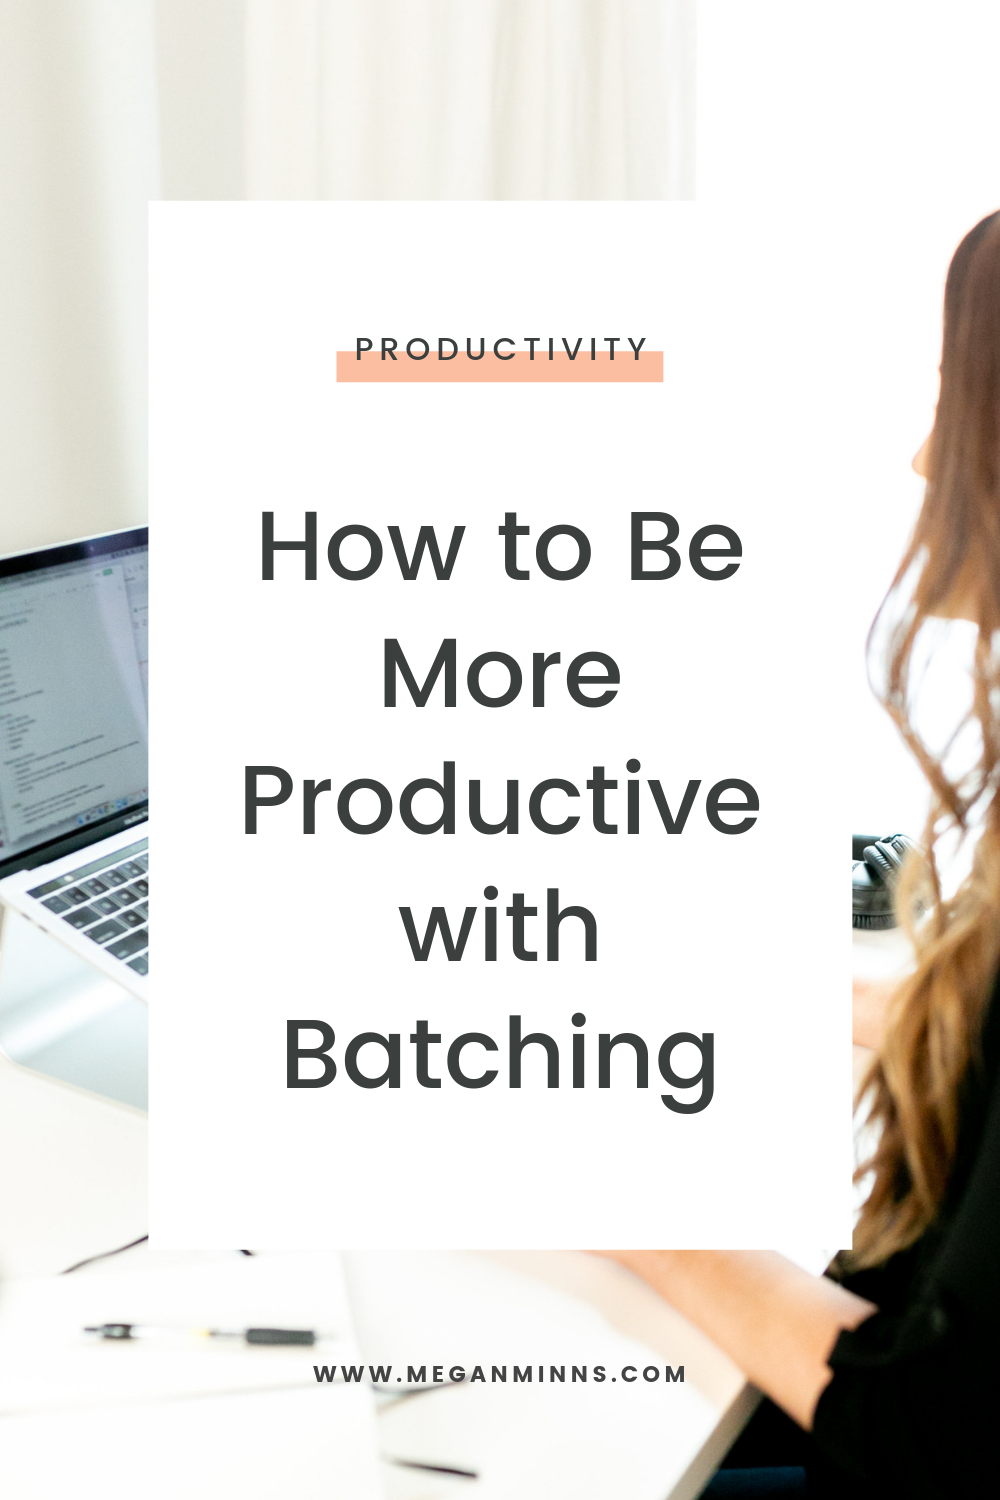 I'm sharing my absolute favorite productivity techniques, batching. Batching really is the way to make doing anything in your business easier and faster.  You can be more productive with batching in a lot of different ways. I'm going to use content creation as my example, but get creative and start thinking of all the things that you do on a regular basis that you can start batching.  You might be surprised by how much time you can start saving!  READ THE FULL BLOG POST ➡️ https://meganminns.com/blog/batching